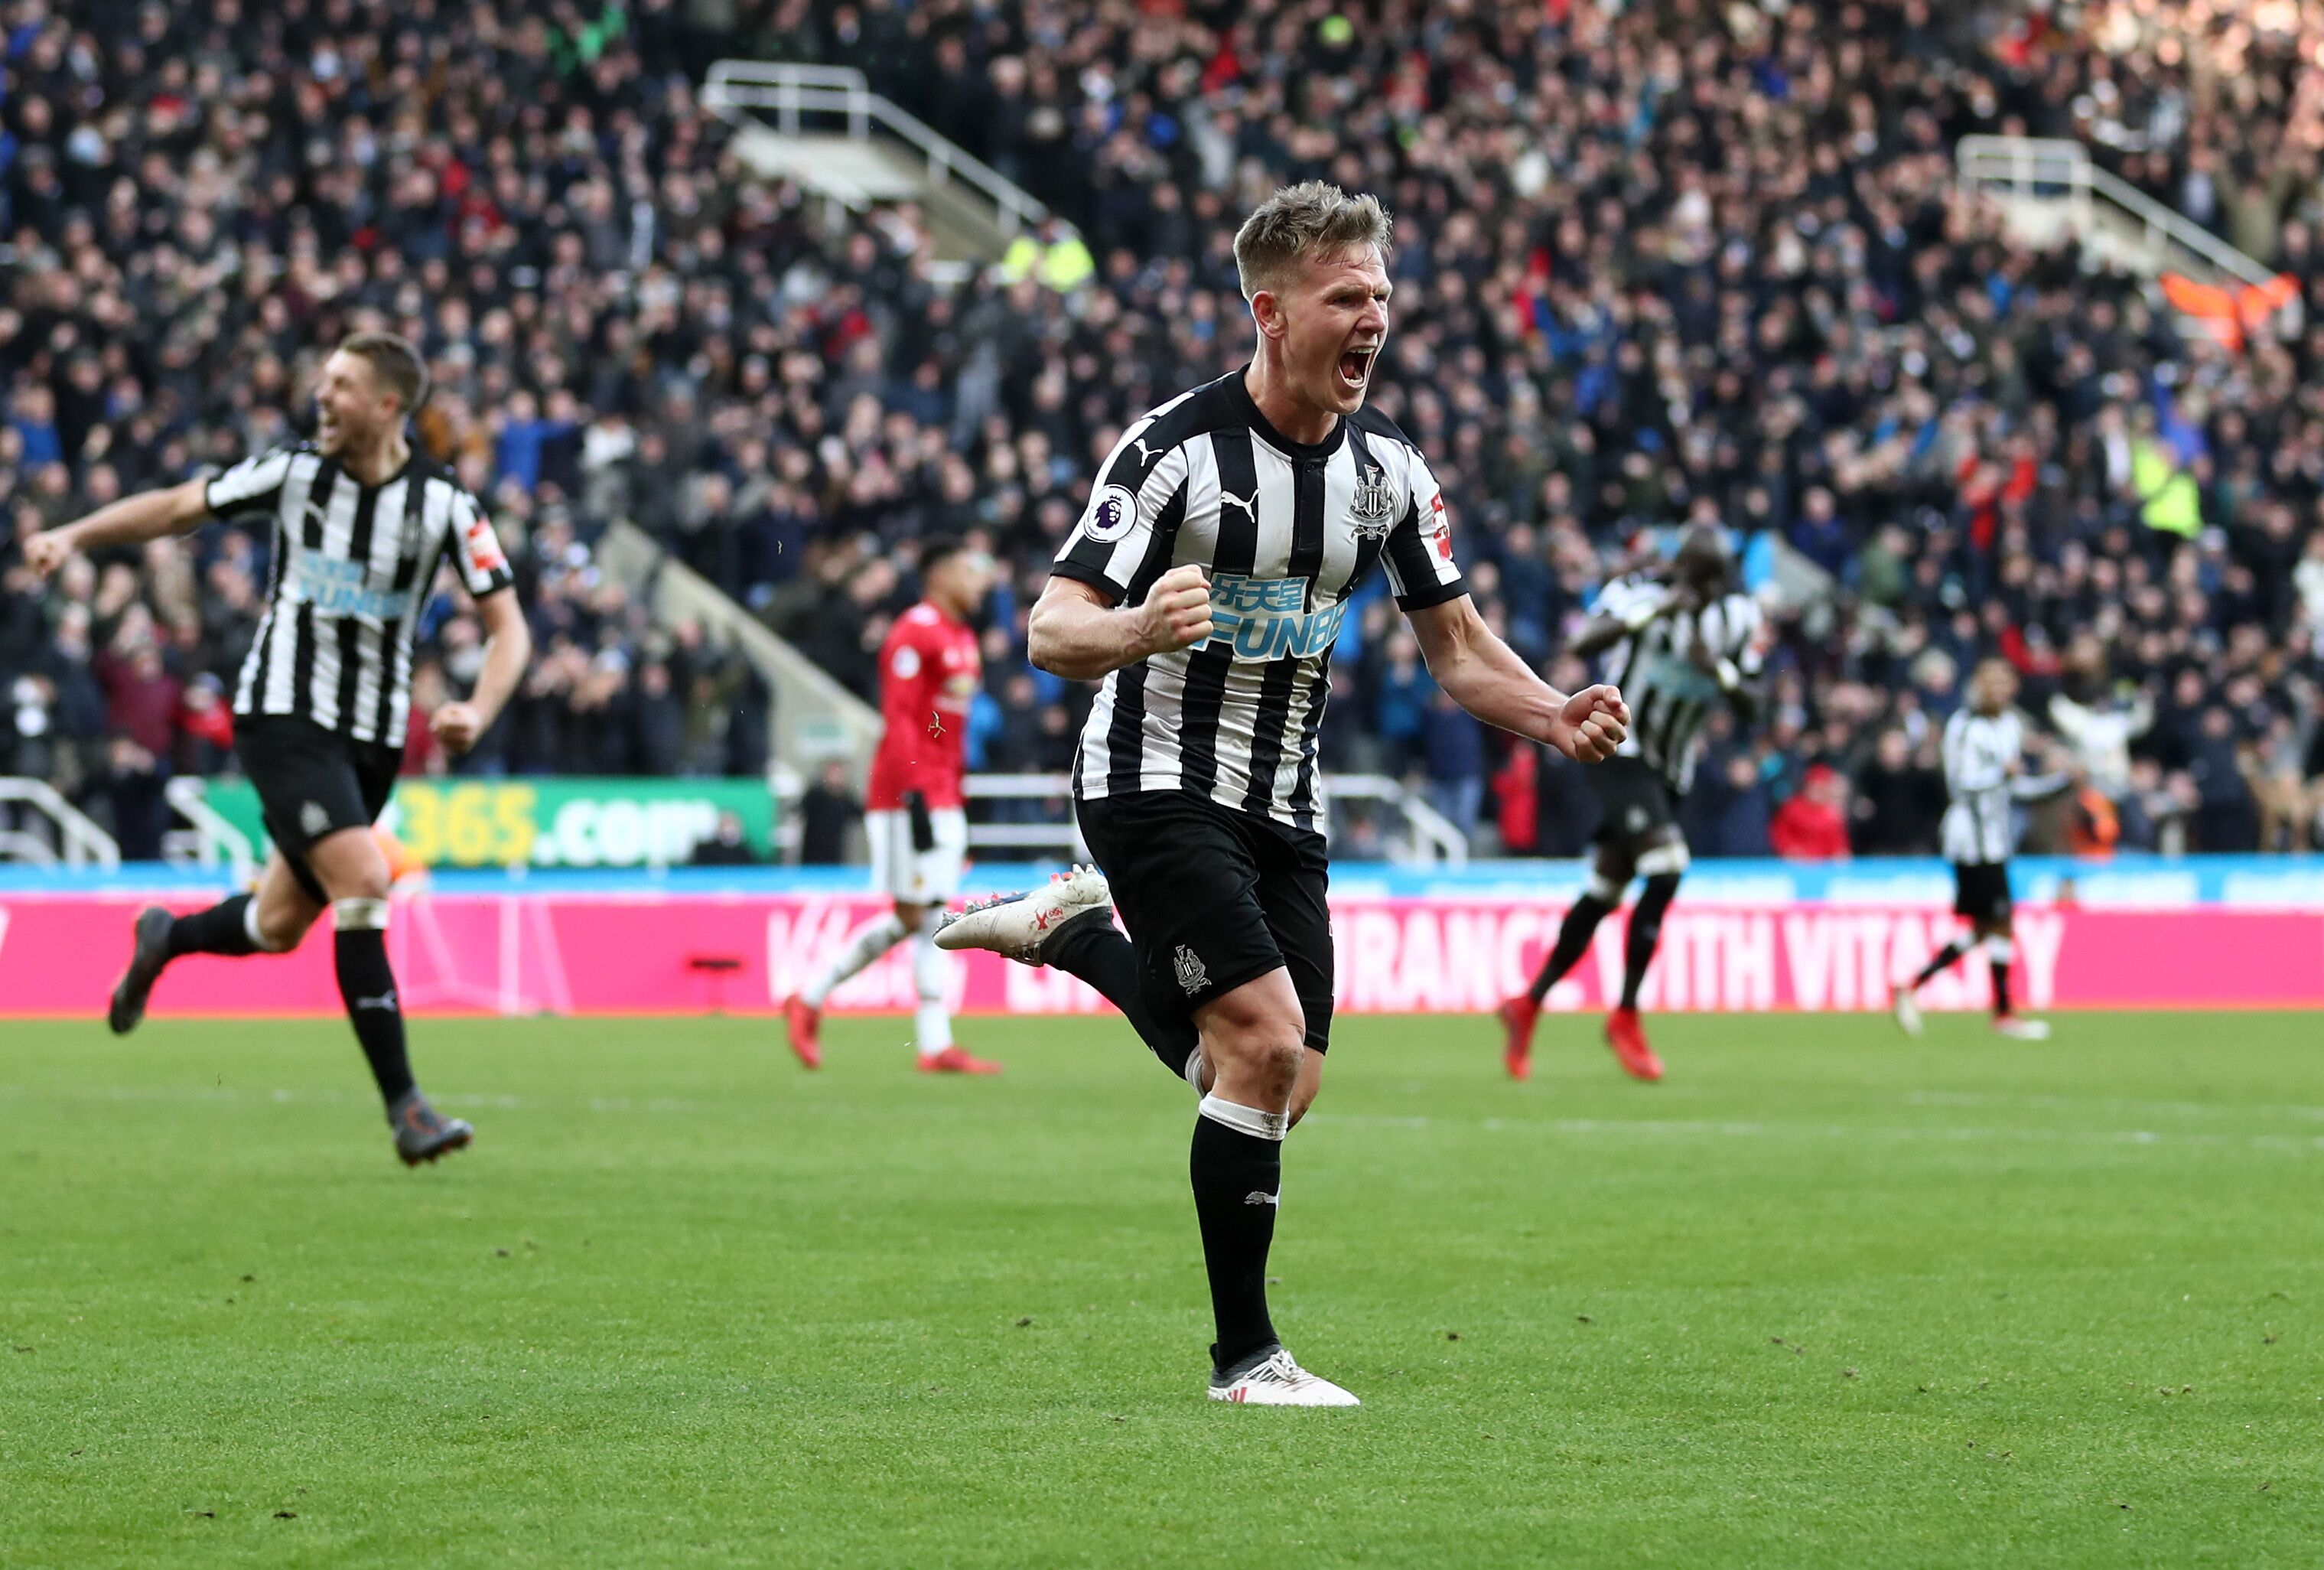 Newcastle United: Newcastle United Earn A Tremendous And Important Victory